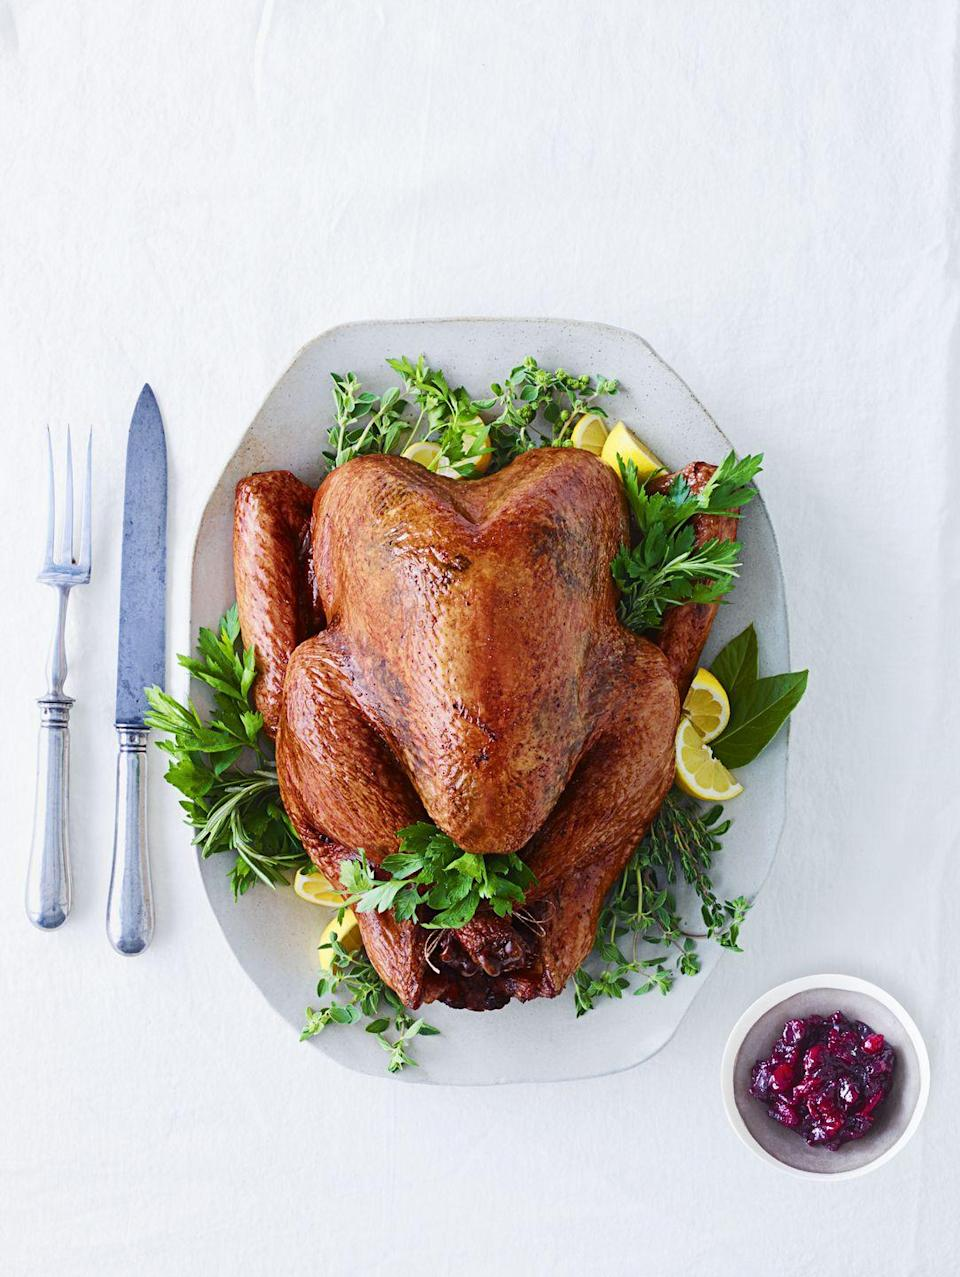 """<p>... and fill up the bird's cavity with herbs and aromatics. Instead of packing your bird with bread cubes that inevitably turn soggy (we prefer a <a href=""""https://www.goodhousekeeping.com/food-recipes/a5166/traditional-bread-stuffing-herbs-1473/"""" rel=""""nofollow noopener"""" target=""""_blank"""" data-ylk=""""slk:crispy-topped stuffing"""" class=""""link rapid-noclick-resp"""">crispy-topped stuffing</a> cooked on the side), stuff the turkey with fresh whole herbs, lemon halves, shallots and smashed cloves of garlic that lend tons of flavor with zero mush.</p>"""